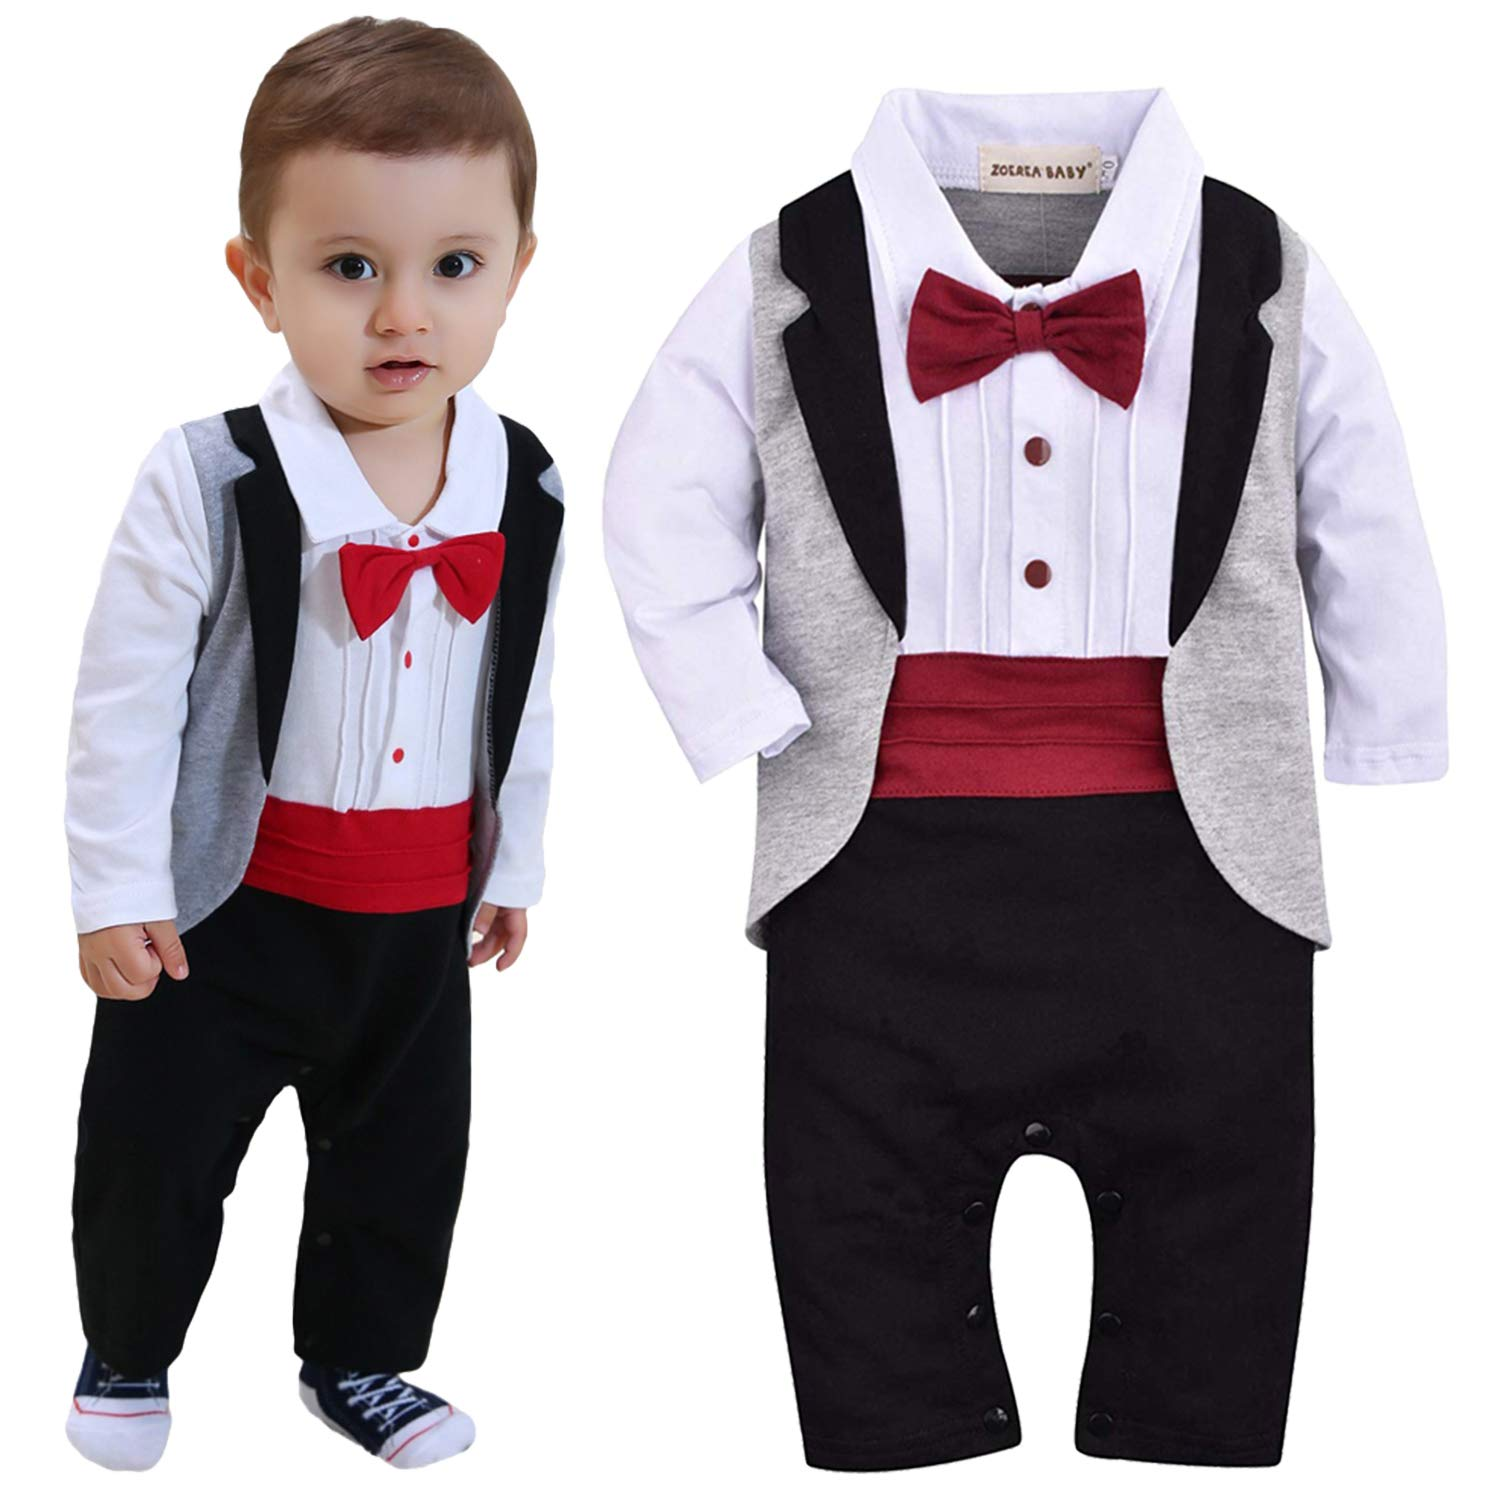 Fairy Baby Little Boys 3PCS Clothes Gentleman Outfit Formal Tuxedo Suit Pant Set